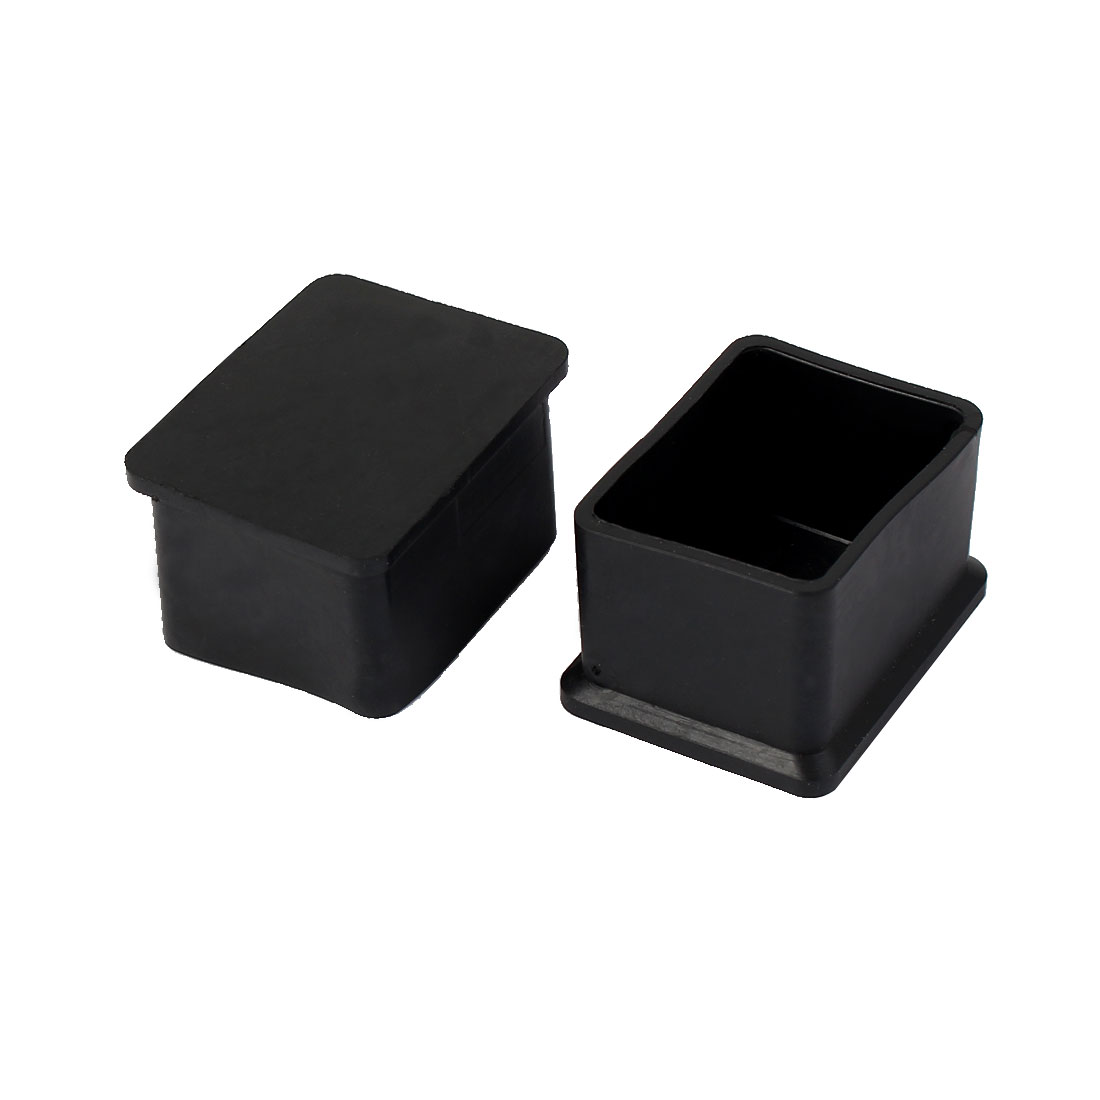 40mm x 30mm Square Shaped Furniture Table Chair Leg Foot Covers Cap Black 2 Pcs